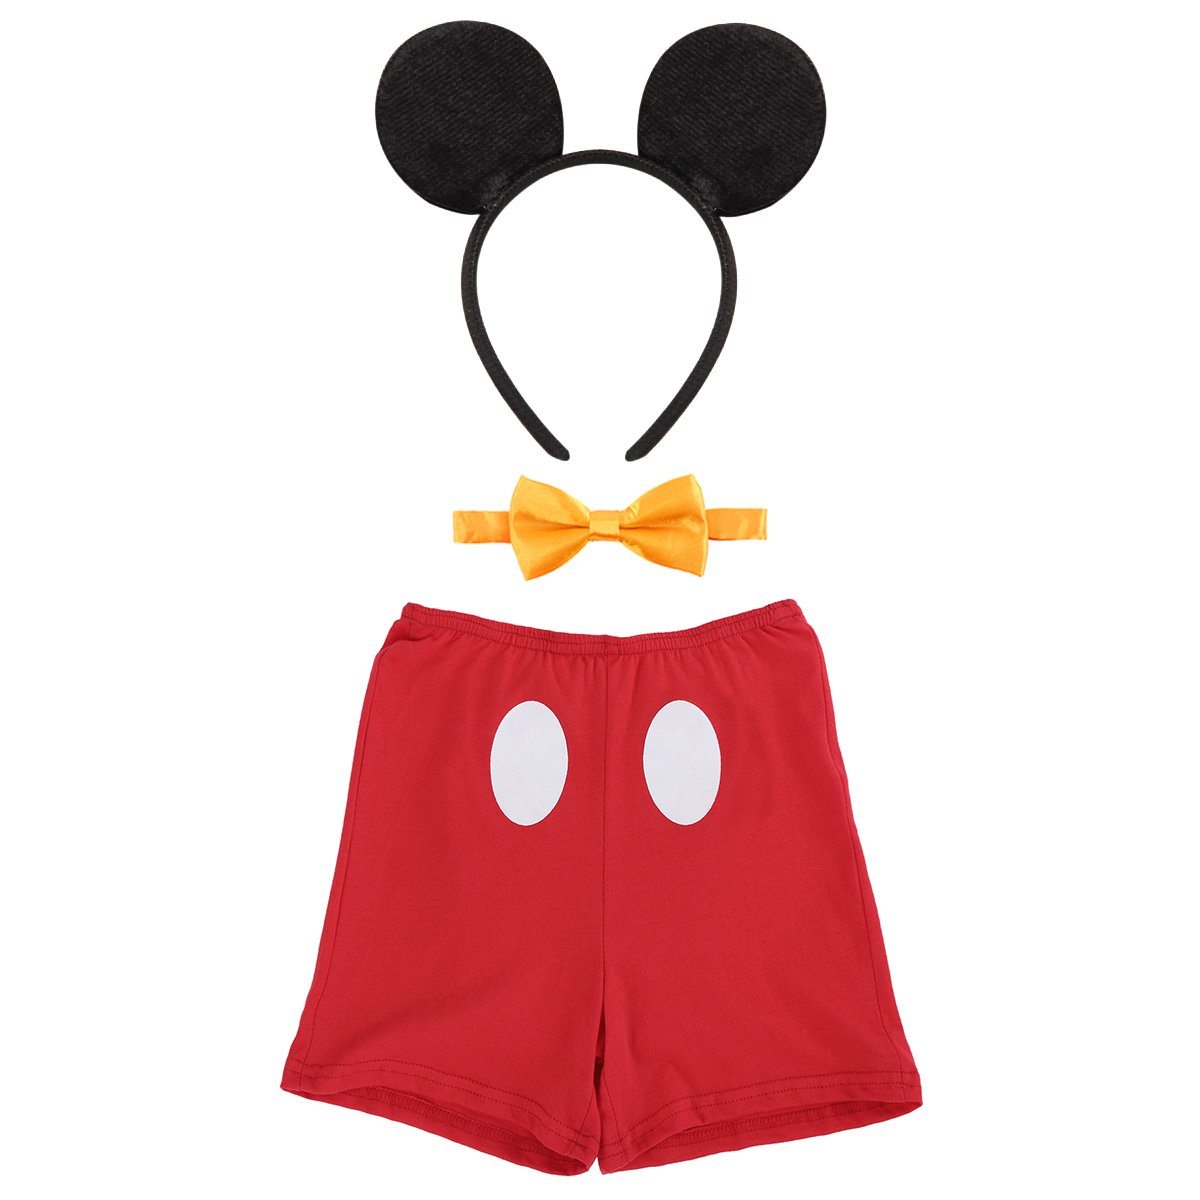 IBTOM CASTLE Cake Smash Outfits Baby Boy 1st Birthday Party Suspenders Diaper Nappy Cover Bow Tie Kids Clothing Christmas Dresses #4 Boxer Red 2-3 Years